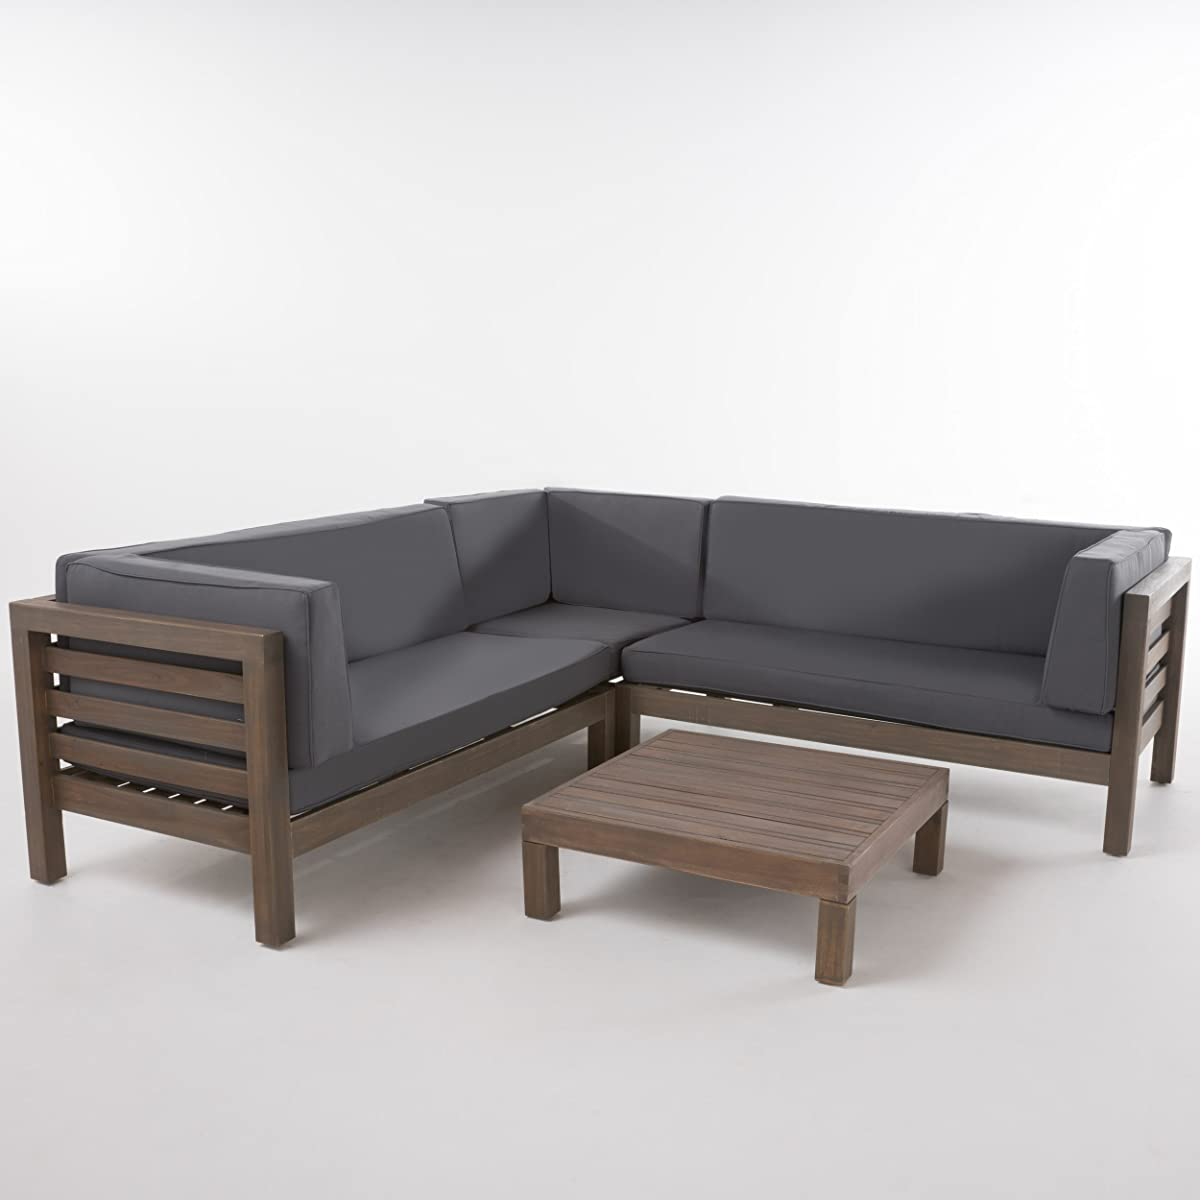 Ravello Outdoor Patio Furniture 4 Piece Wooden Sectional Sofa Set w/ Water Resistant Cushions (Grey)